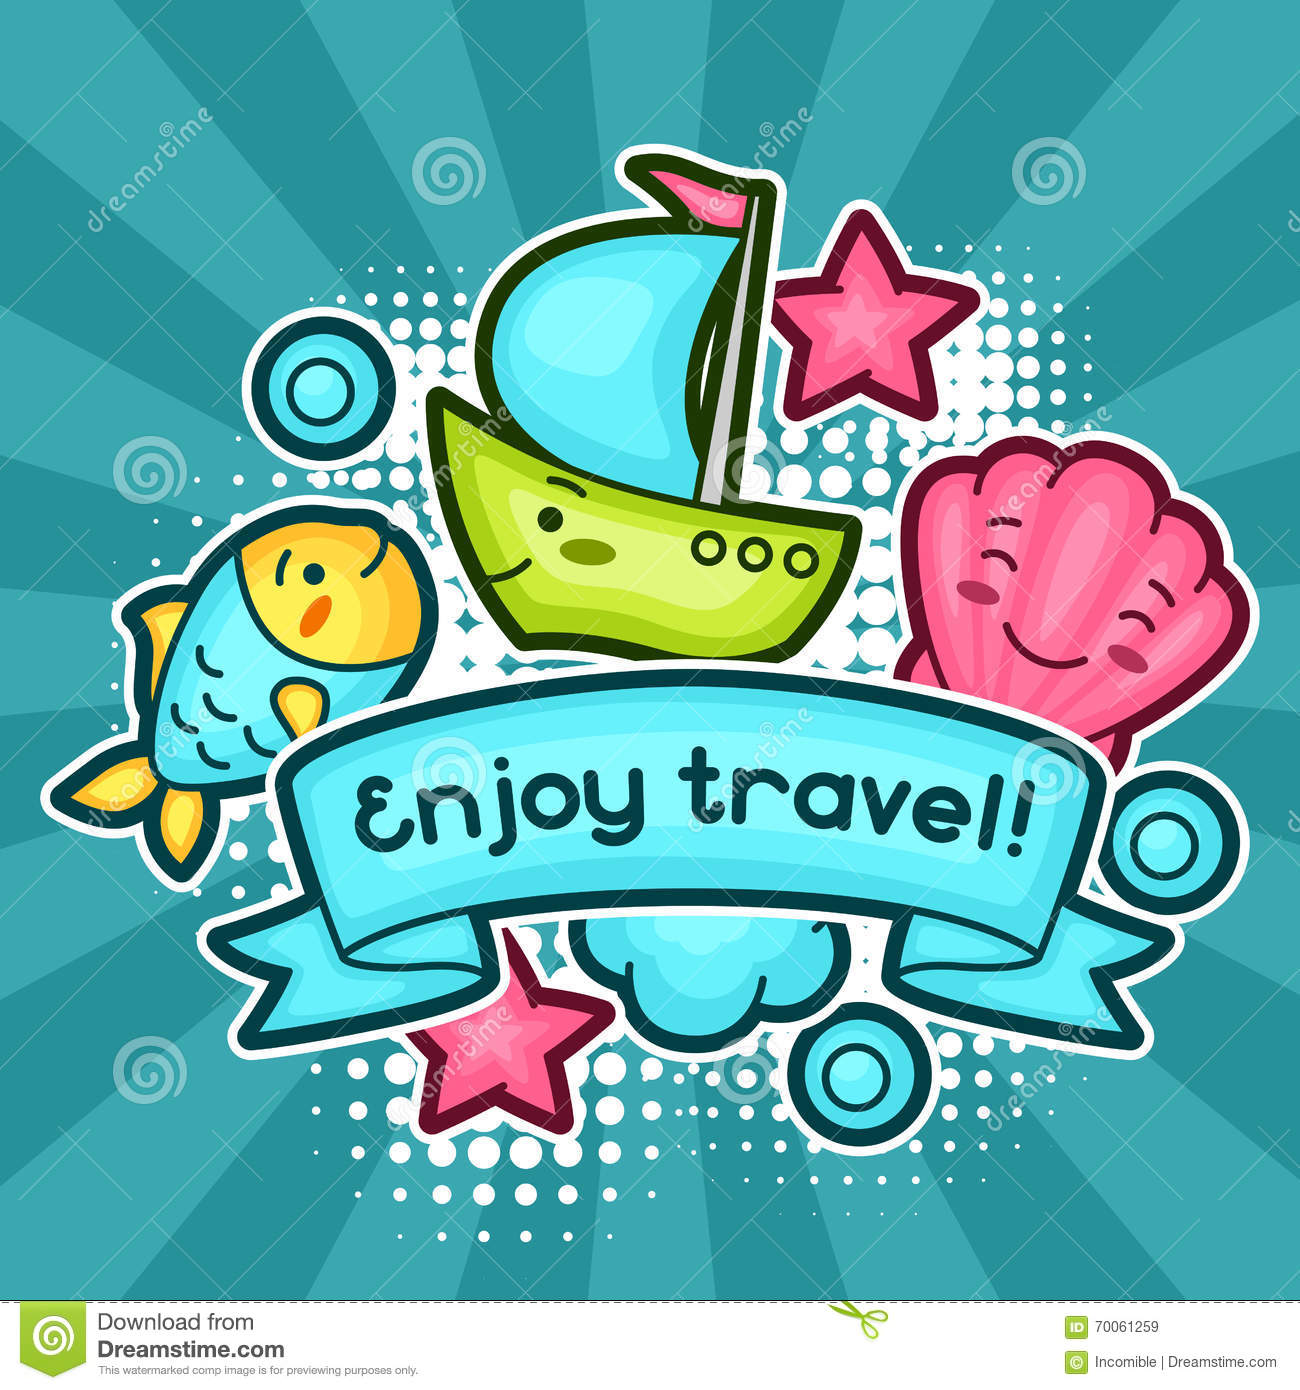 Cute Travel Background With Kawaii Doodles. Summer